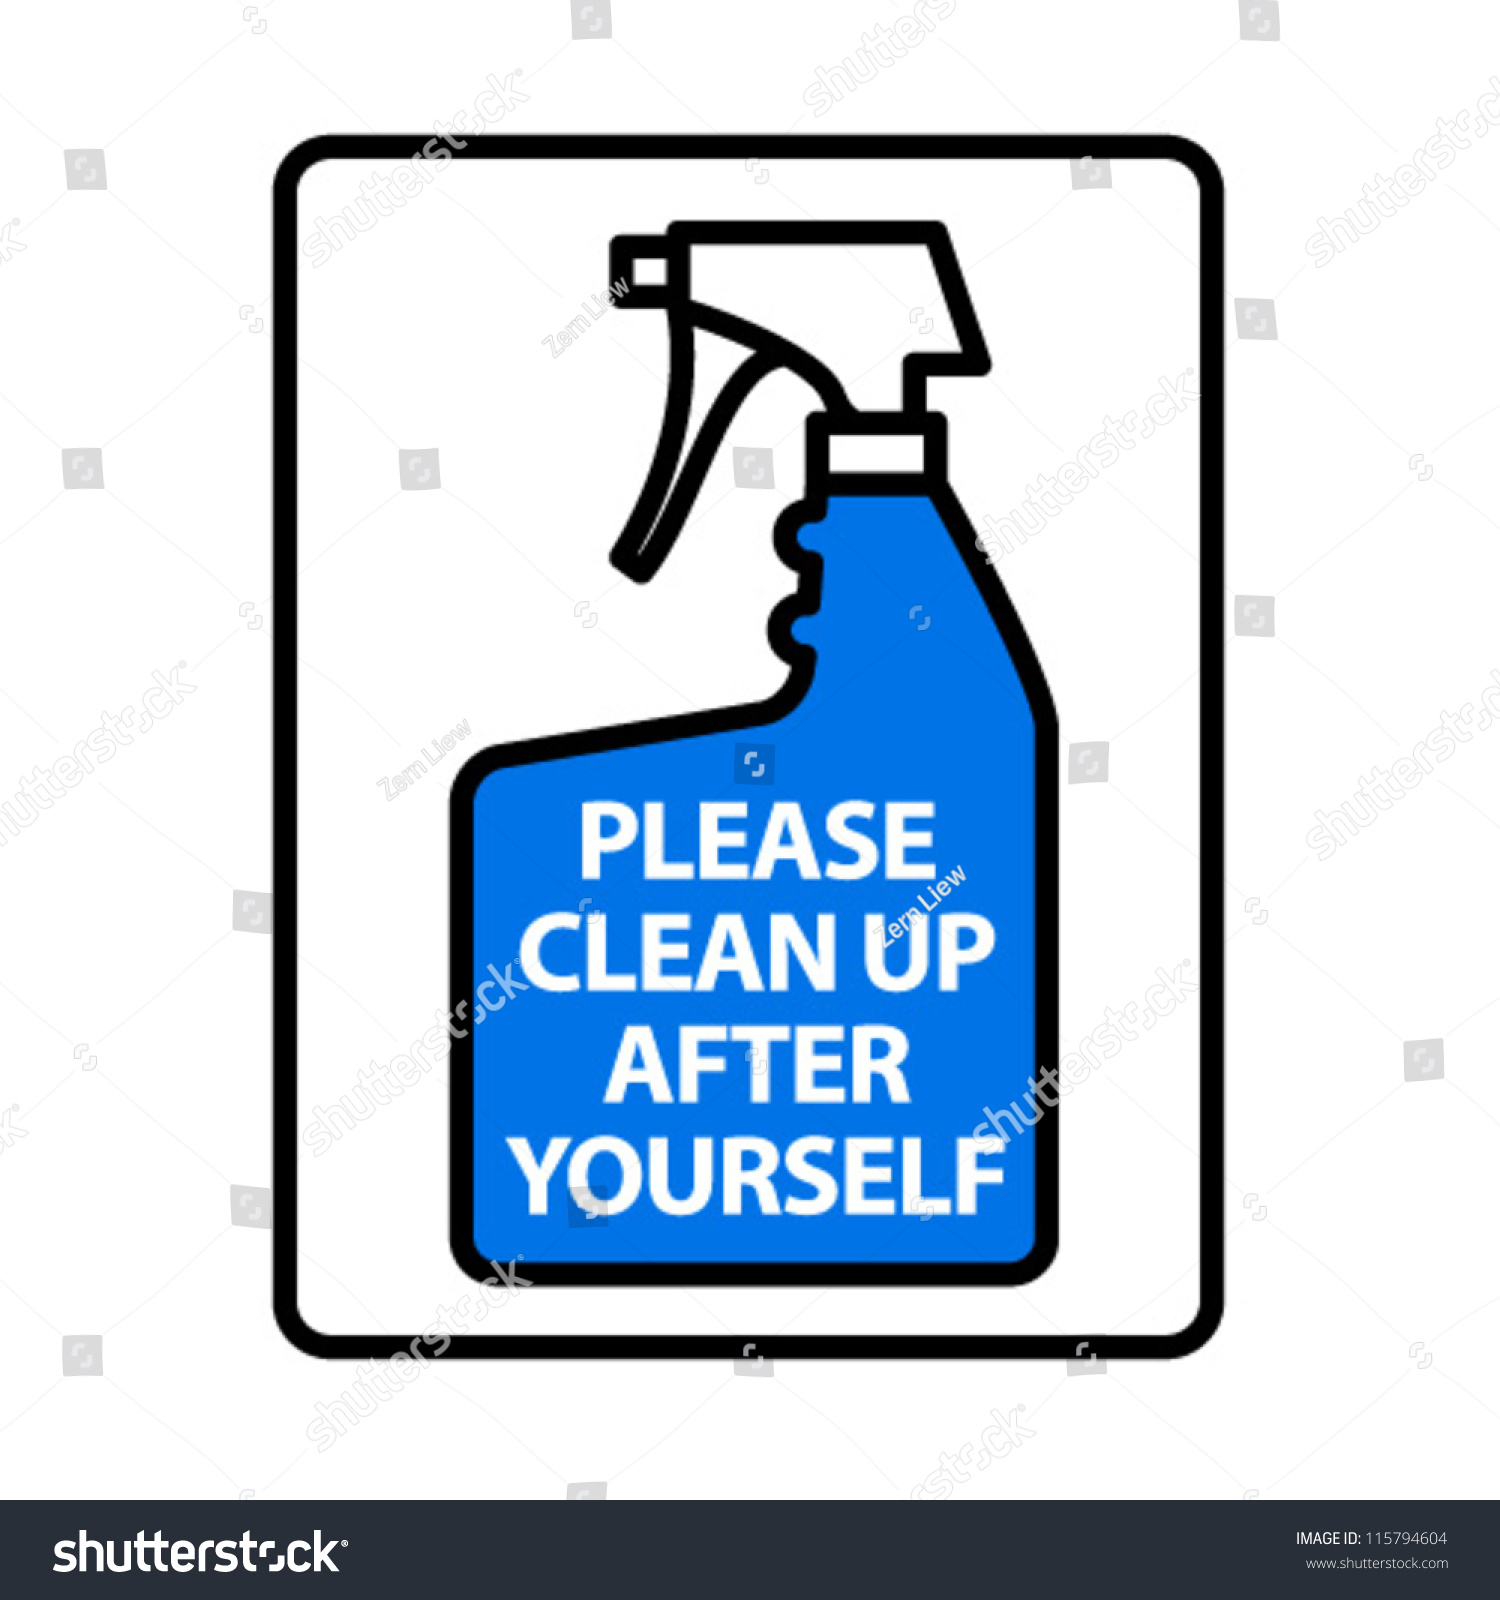 Clean Up After Yourself Office Bing Images